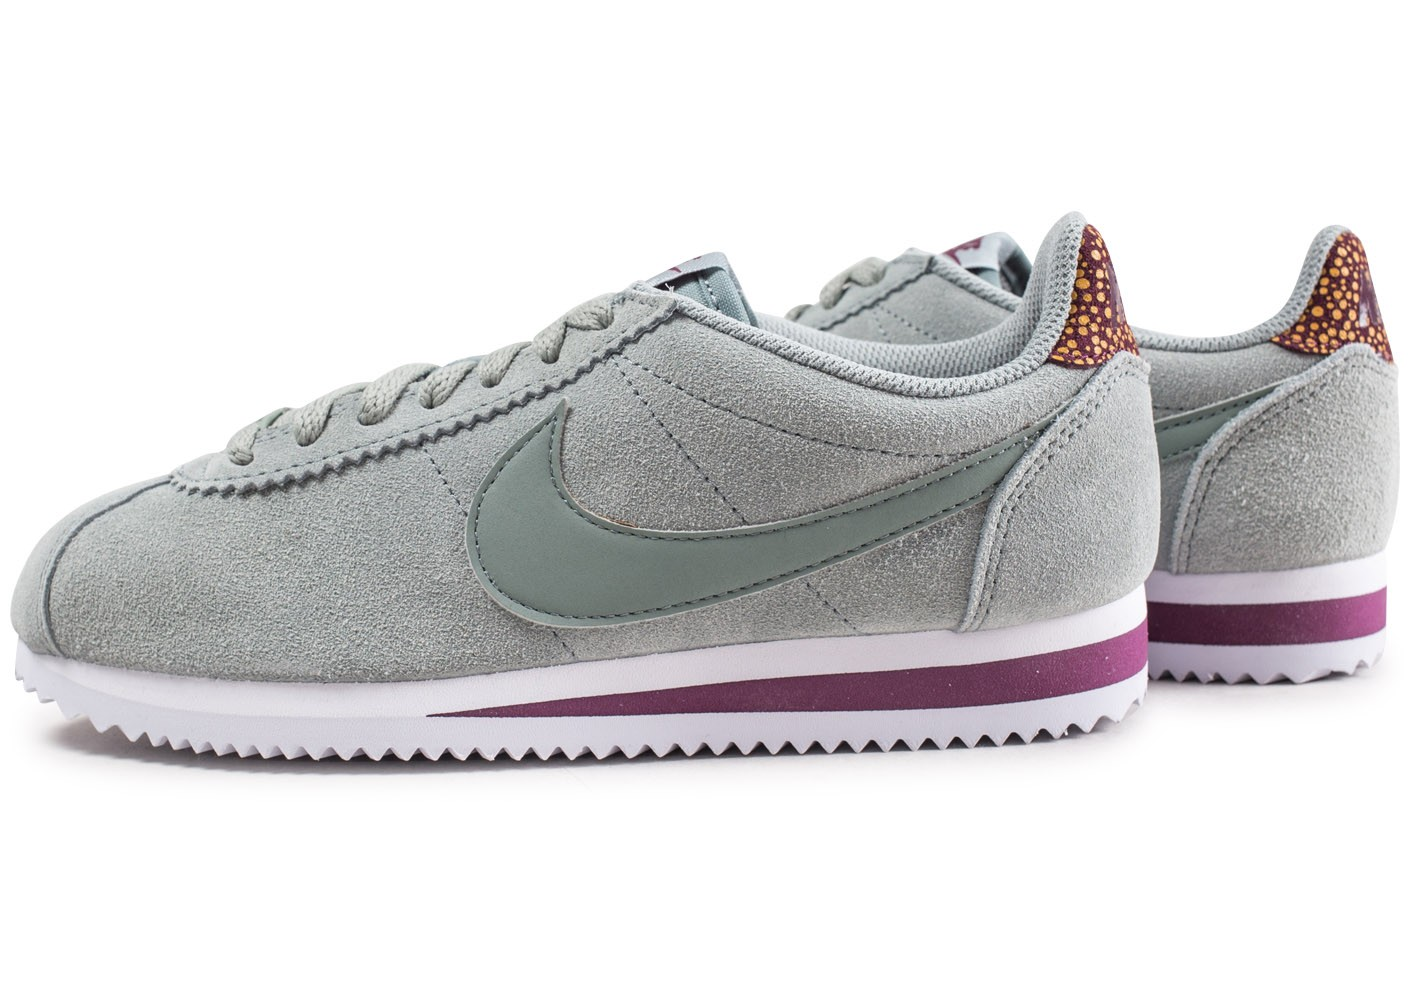 new products 963d4 65449 Premium Vert Chaussures Baskets Nike Femme Cortez Classic Bxqw88g6E